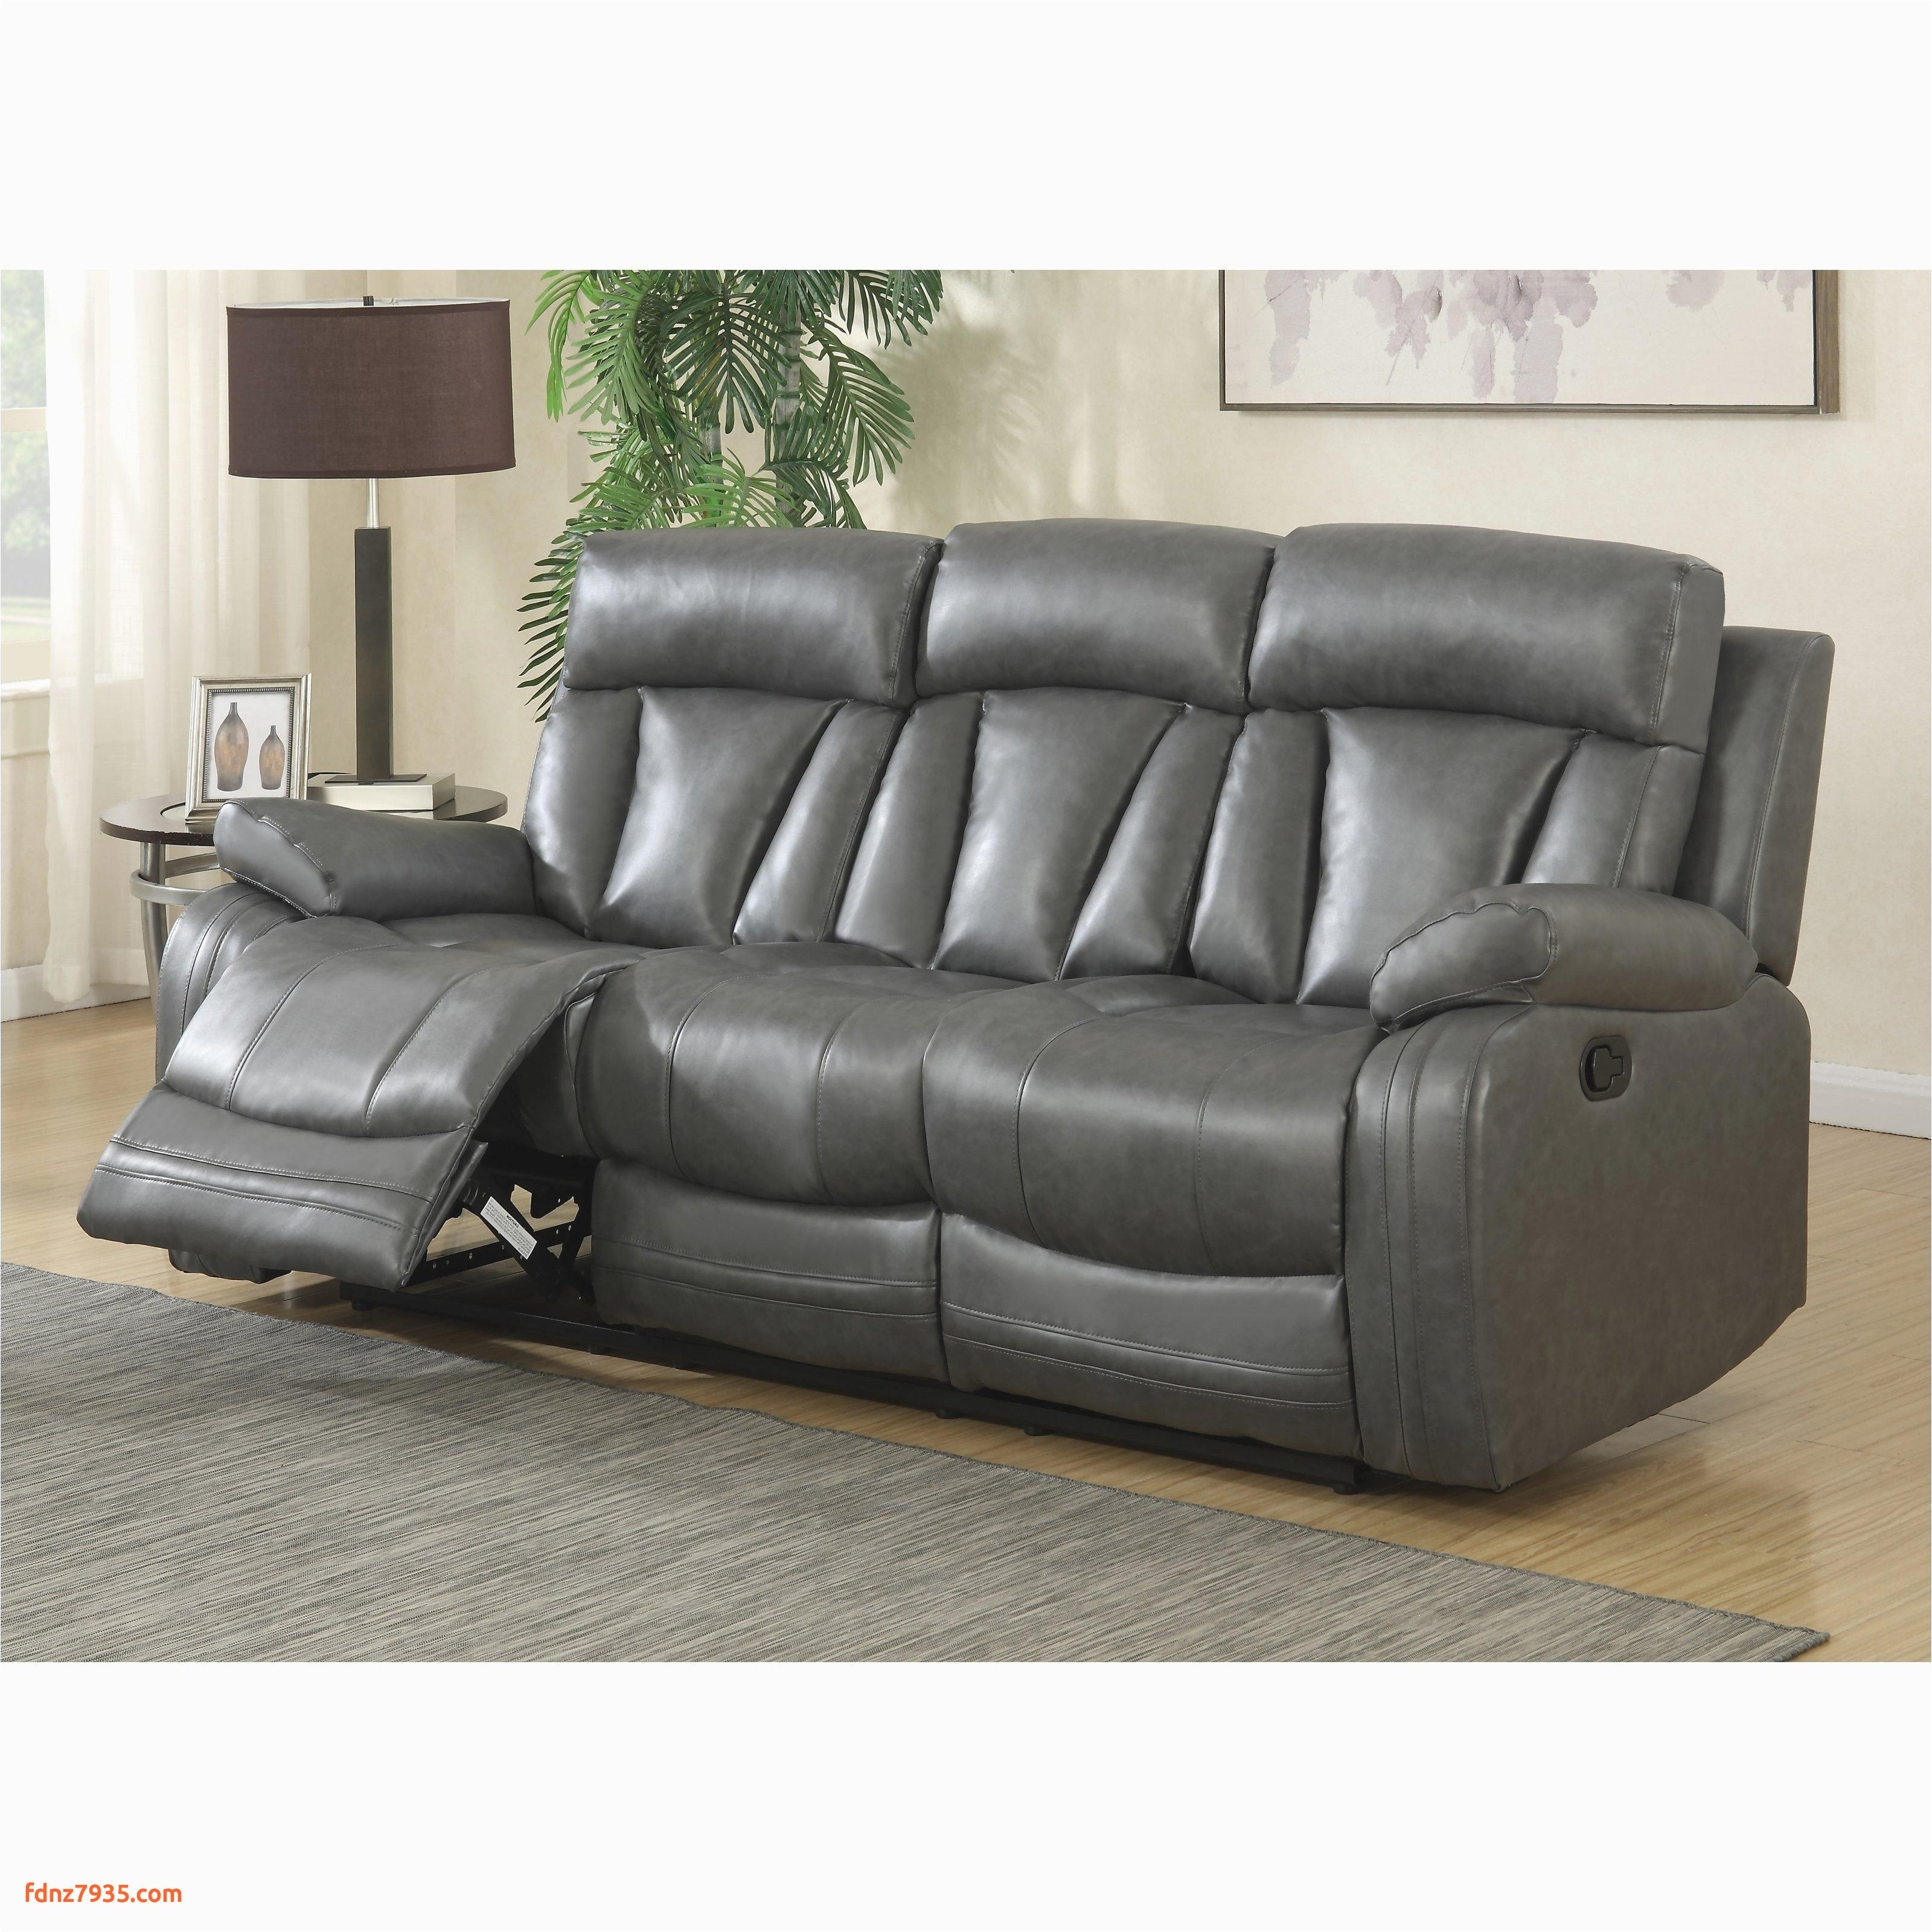 power reclining sofa and loveseat beautiful furniture gray reclining loveseat best tufted loveseat 0d